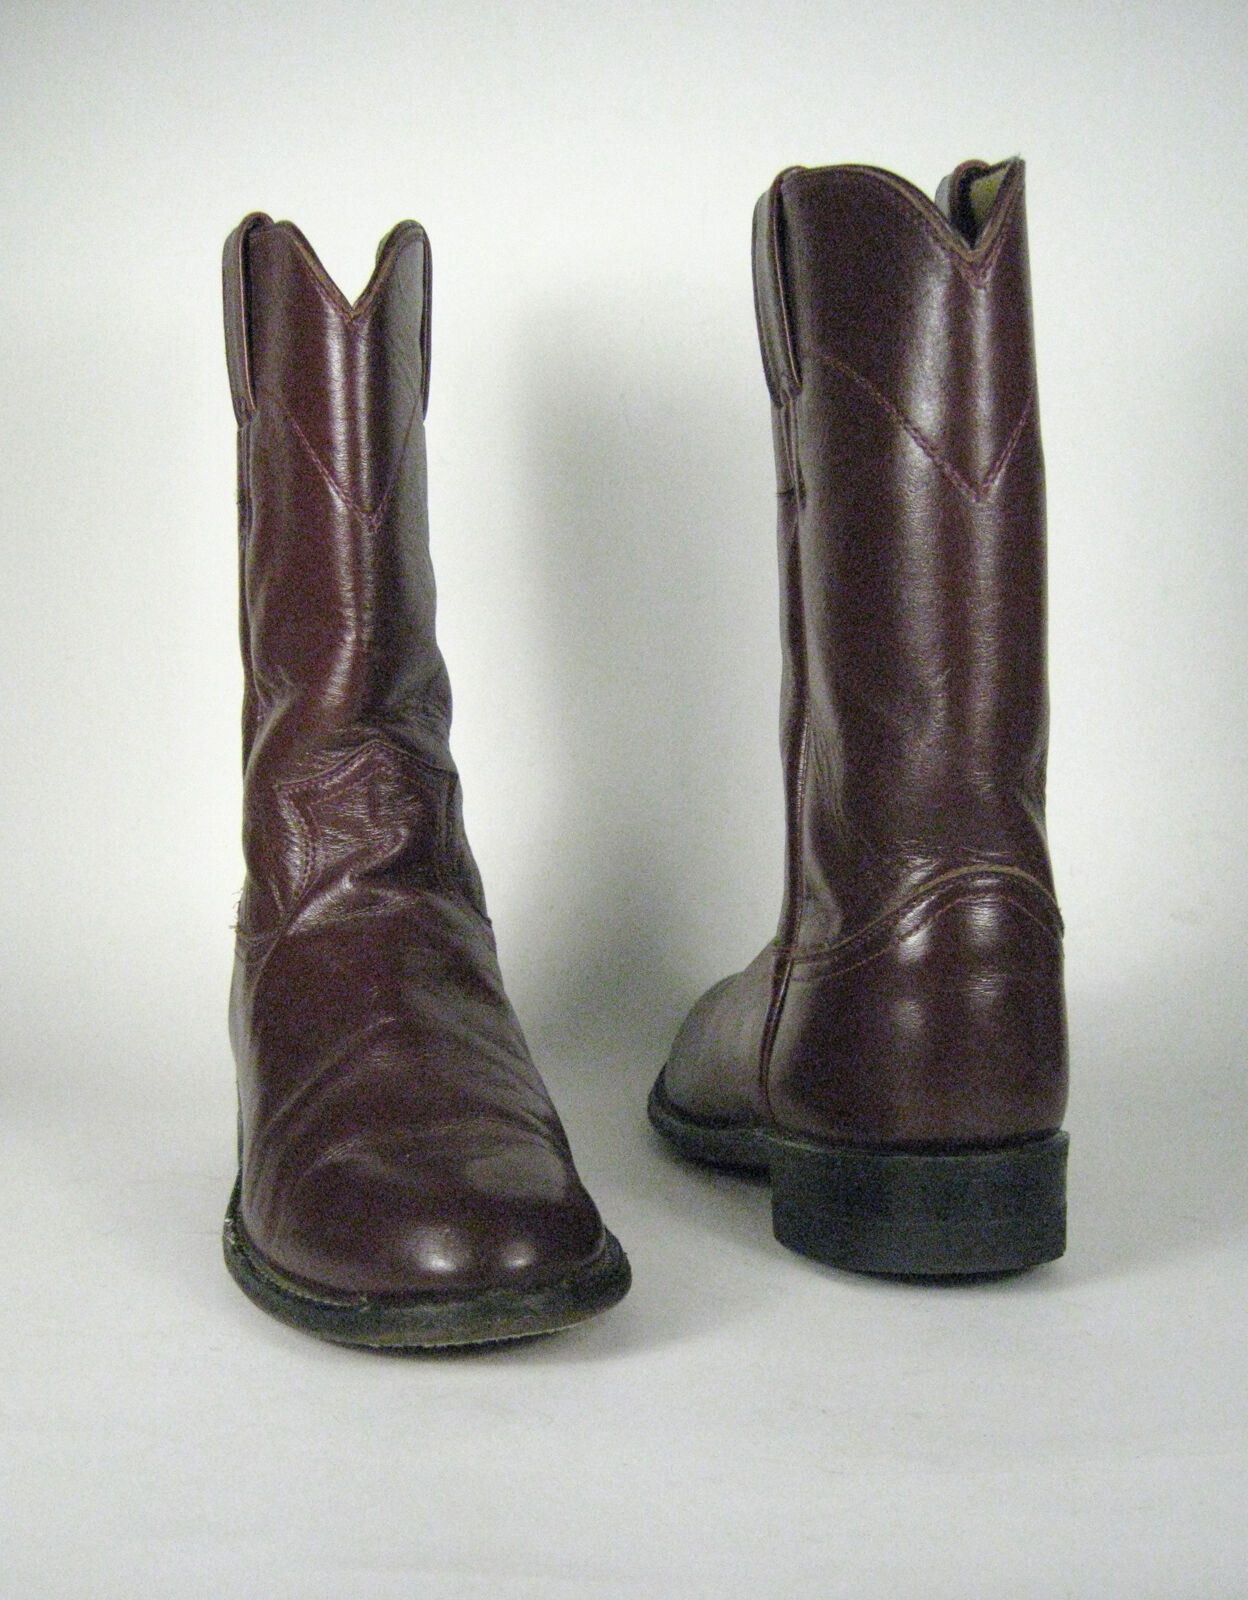 Justins Boots Size 7 1 2 B US Narrow Maroon Leather Roper Western Men's